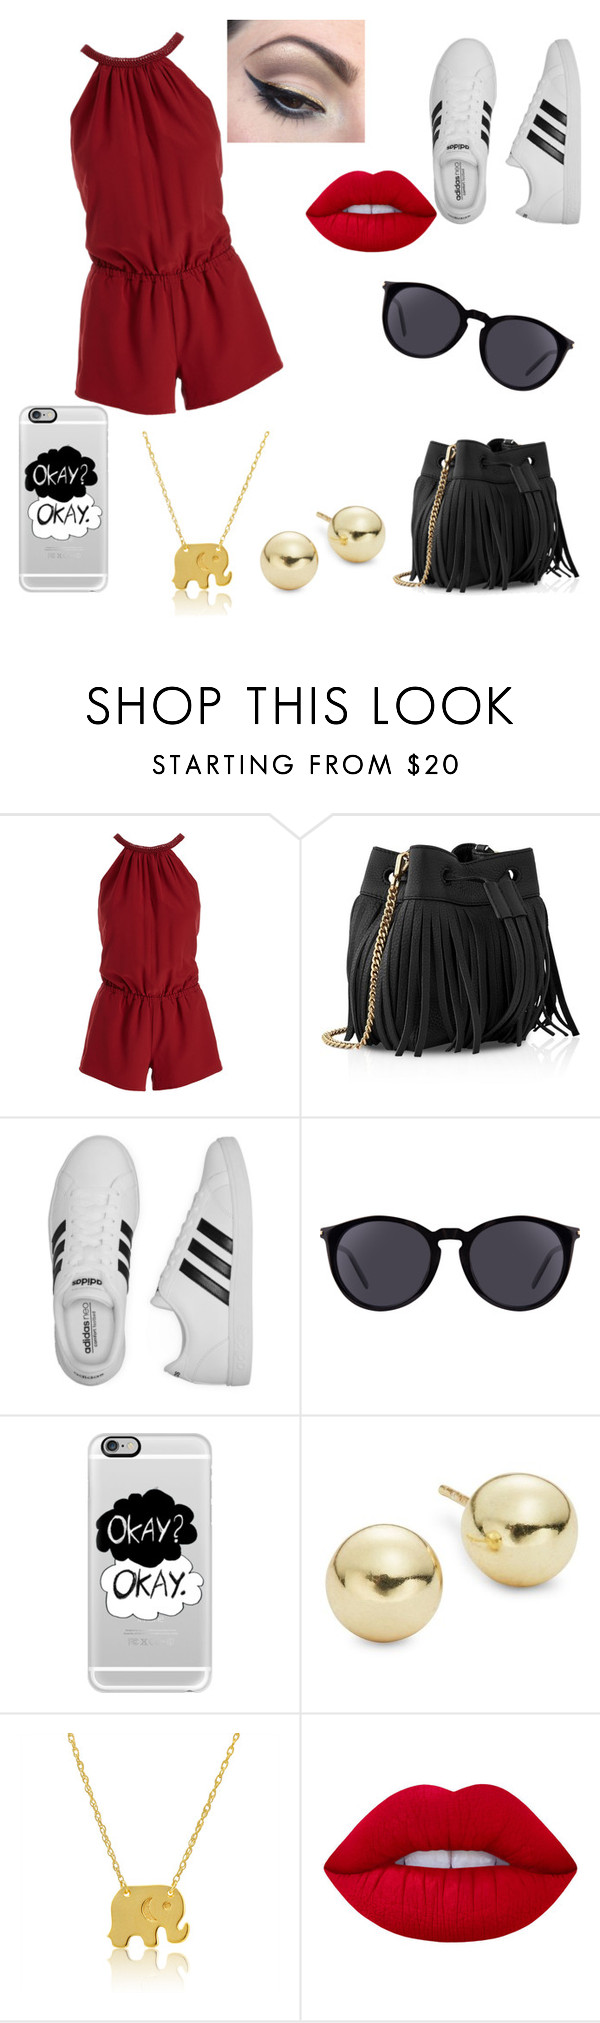 """Daily Outfit  #8"" by niaoffcal ❤ liked on Polyvore featuring Joie, Whistles, adidas, Yves Saint Laurent, Casetify, Lord & Taylor, Wish by Amanda Rose, Lime Crime and Mehron"